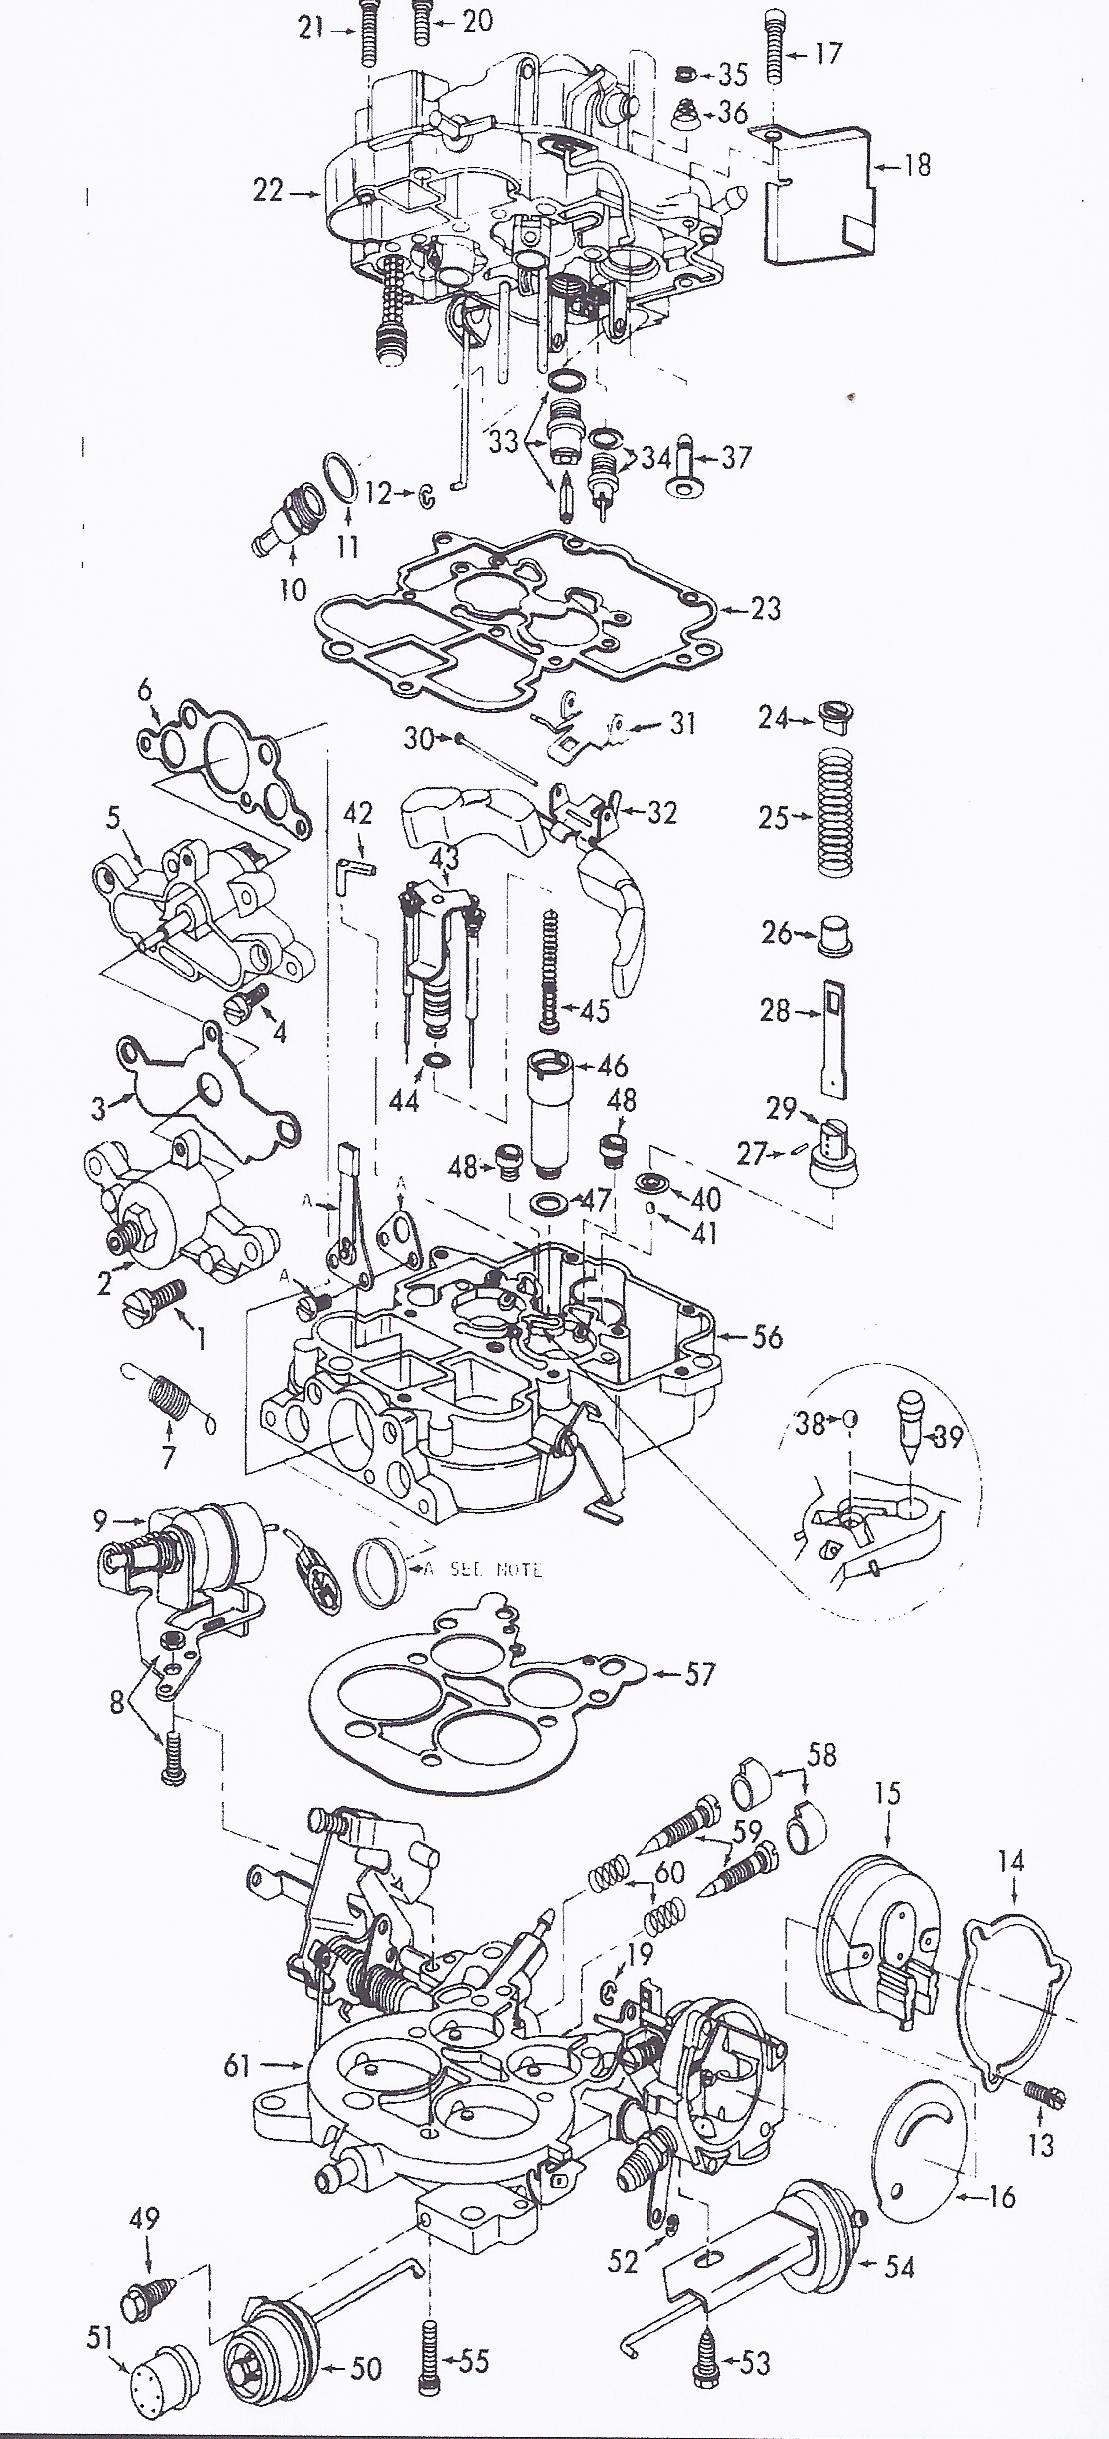 Autolite 4300 Exploded View